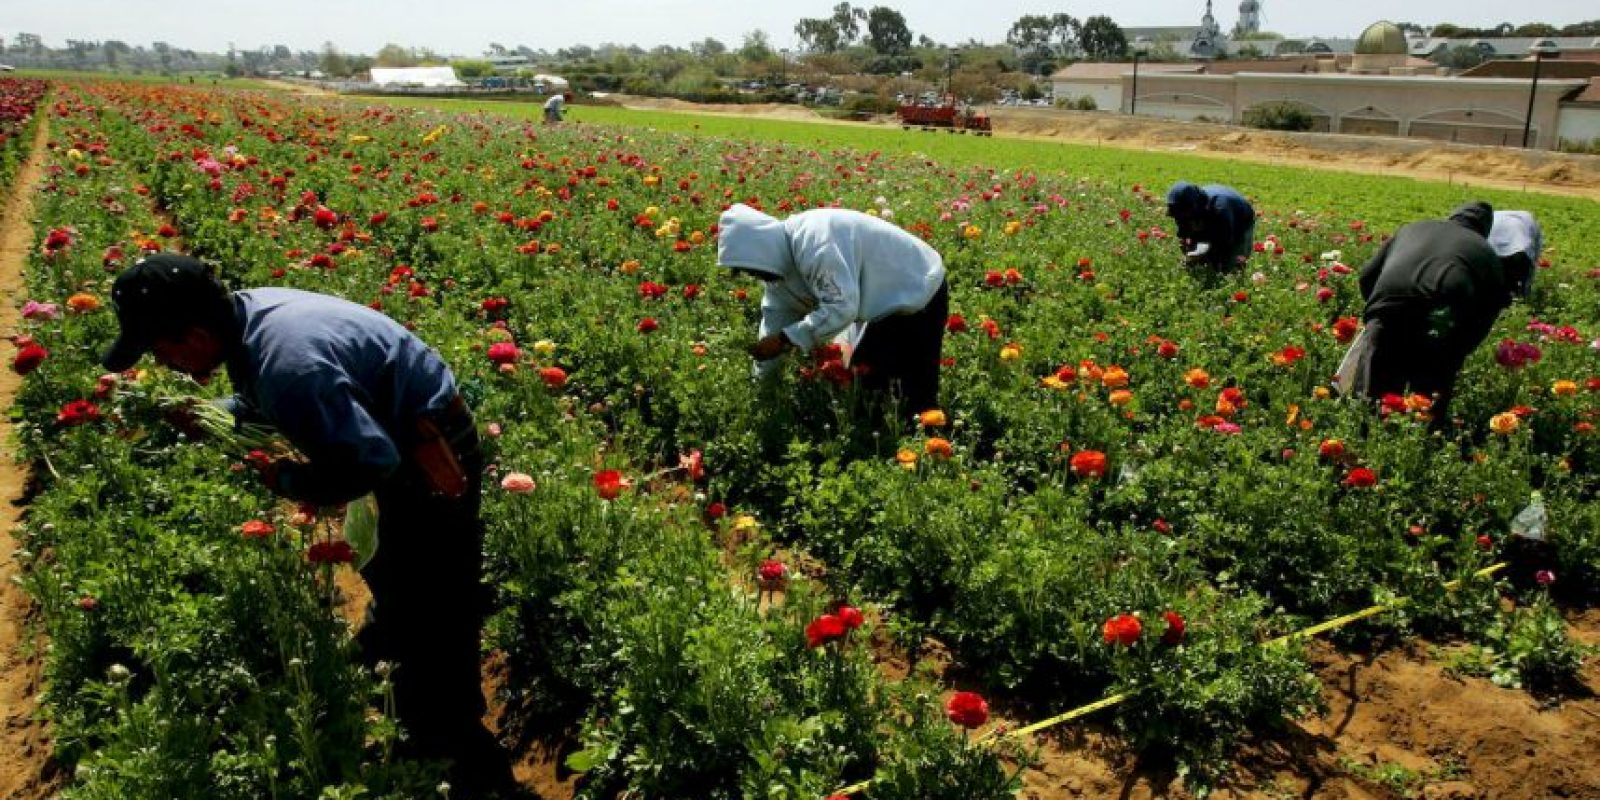 12. Agricultura y pesca- 2.5% Foto:Getty Images